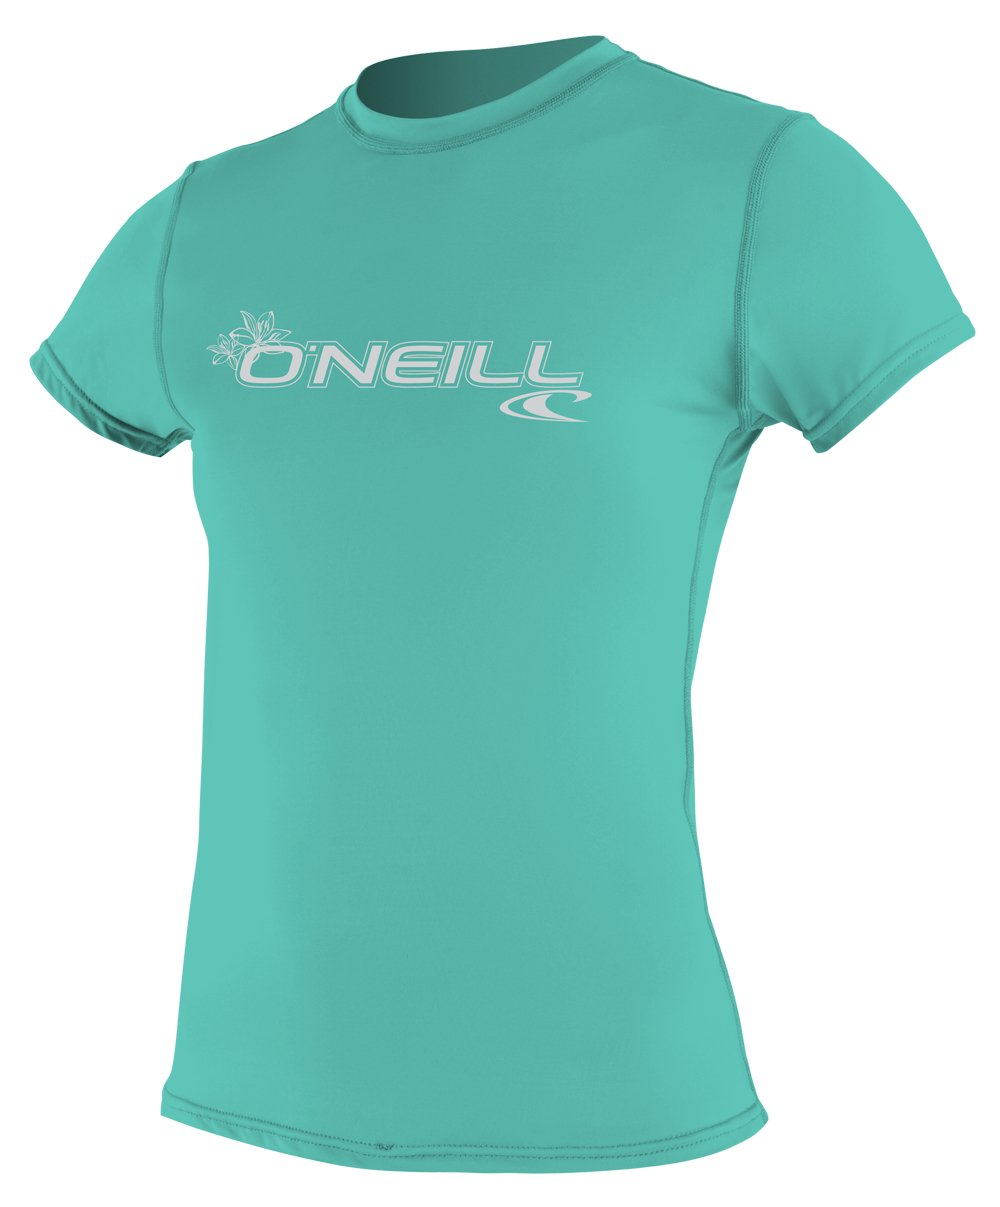 O'Neill Wetsuits Women's Basic Skins Upf 50+ Short Sleeve Sun Shirt, Light Aqua, Medium by O'Neill Wetsuits